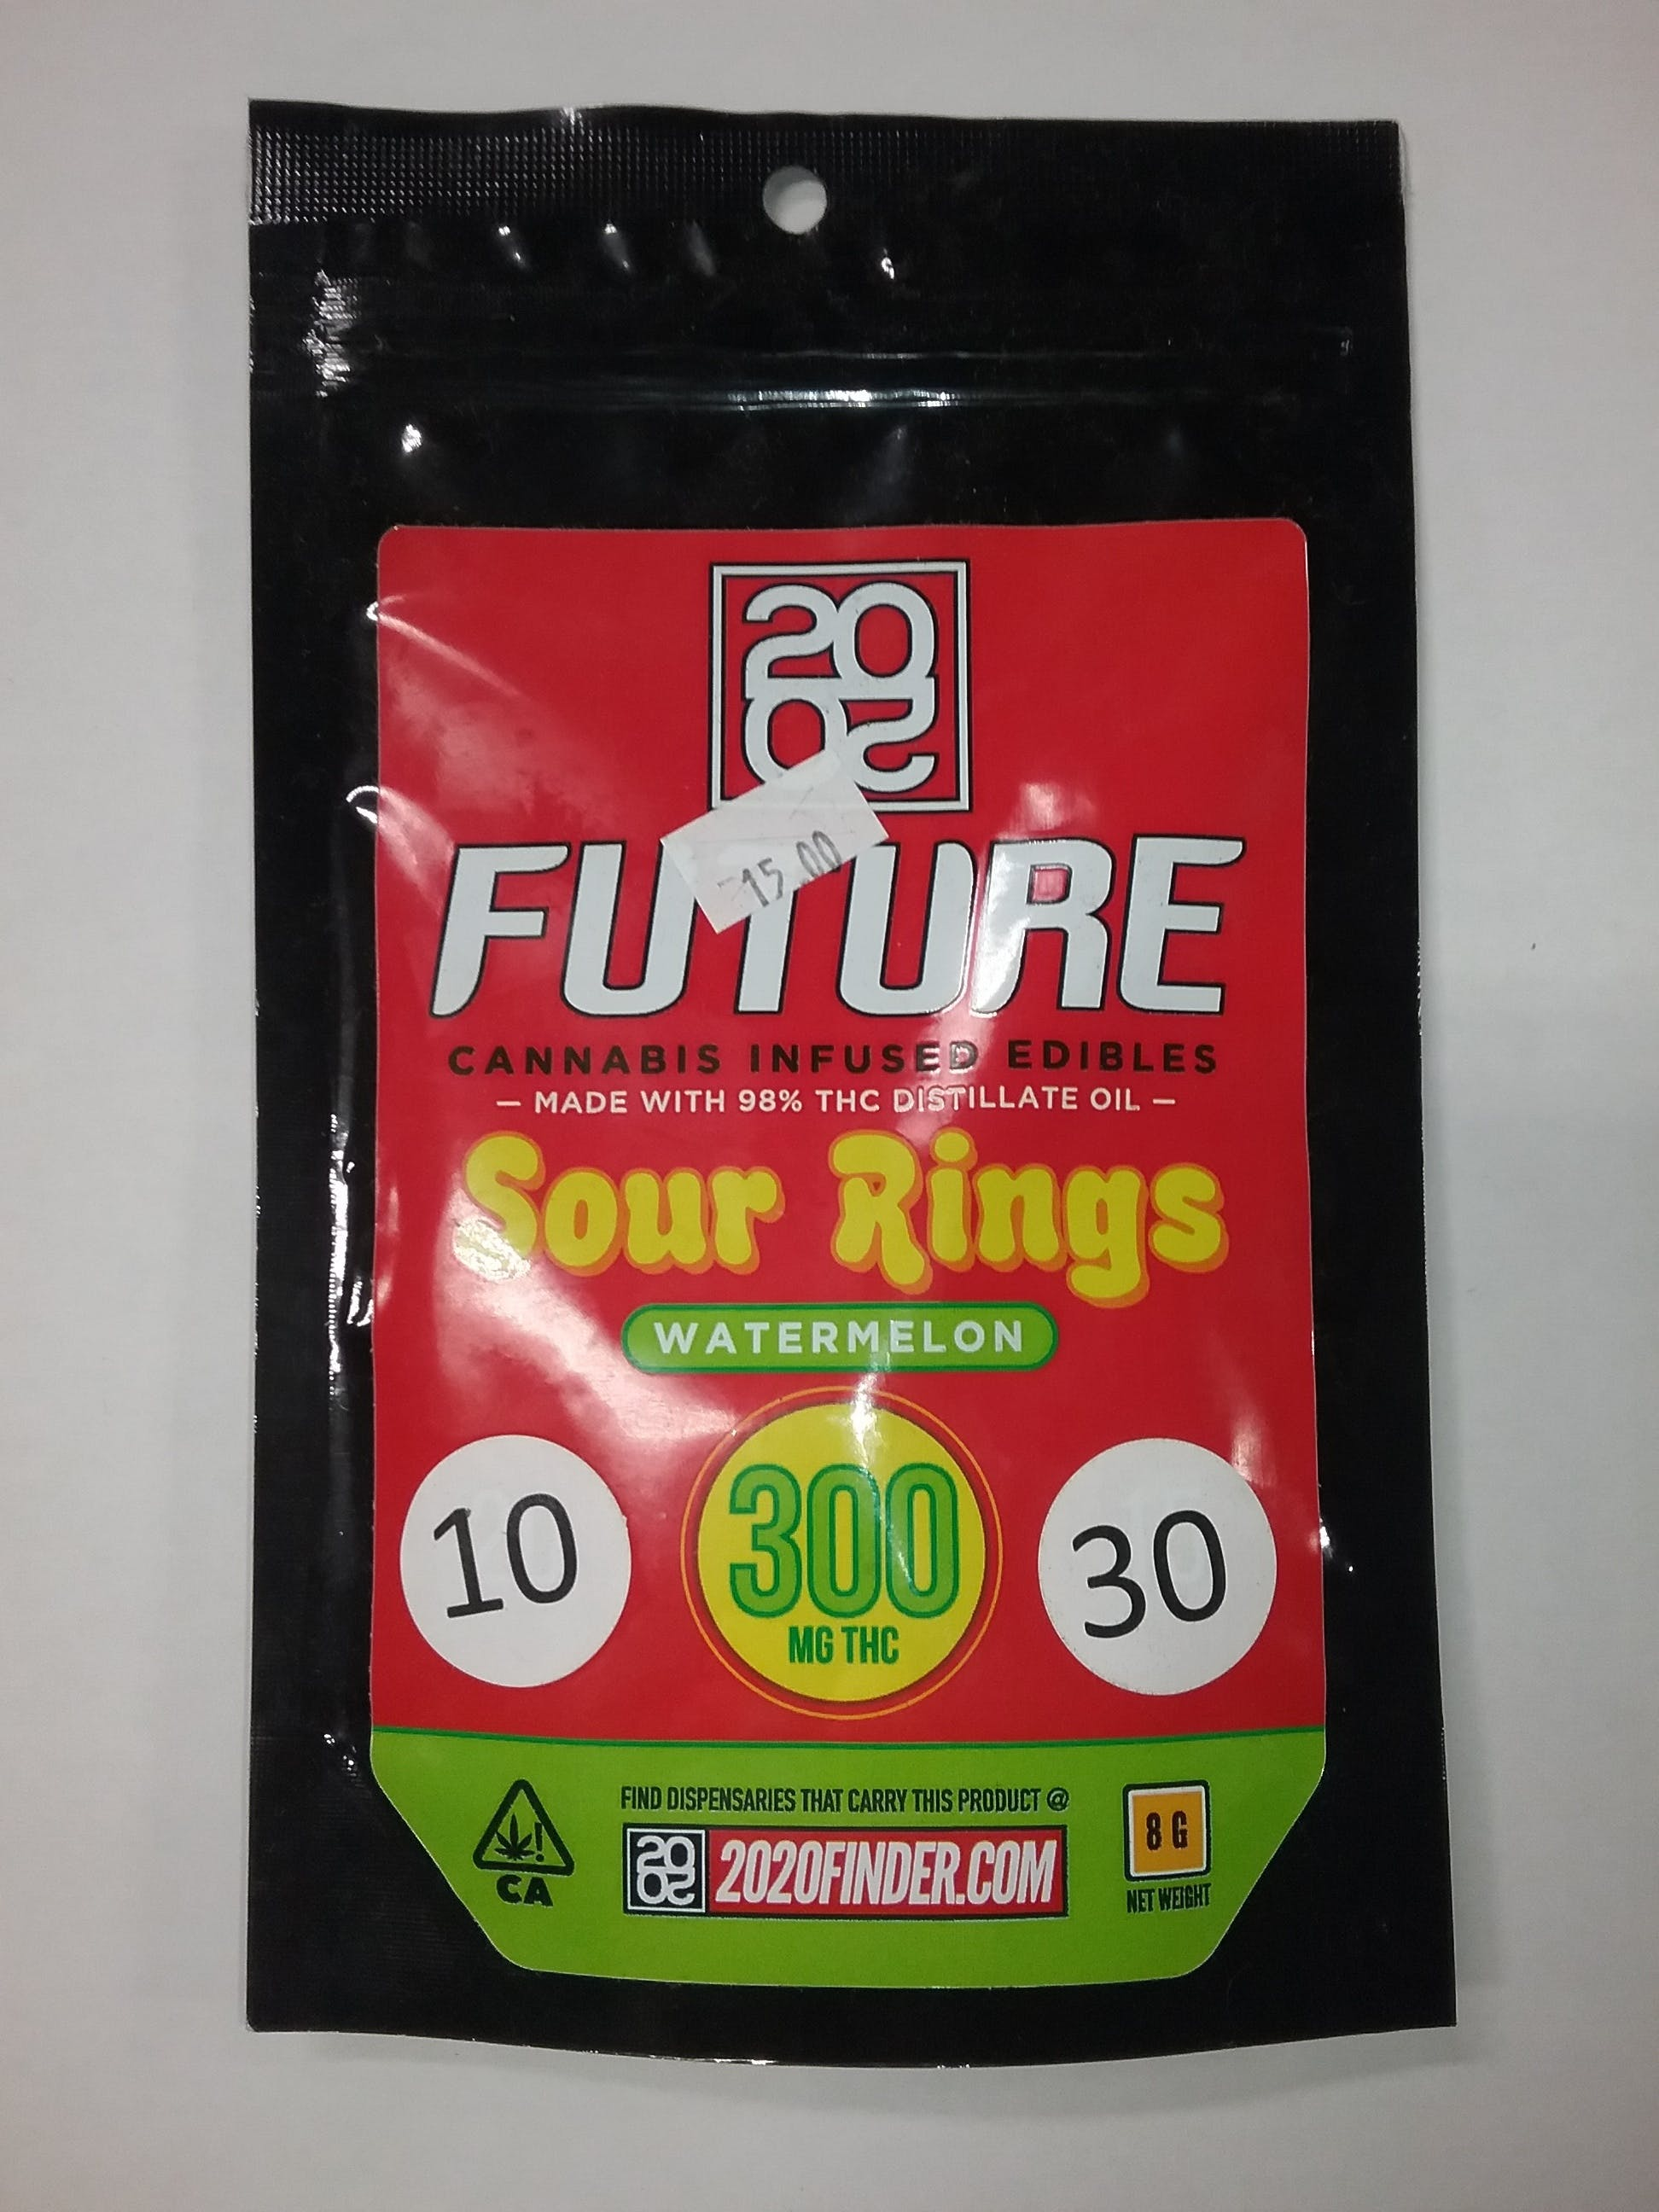 20/20 FUTURE SOUR RINGS 300mg (WATERMELON), Weed Mart